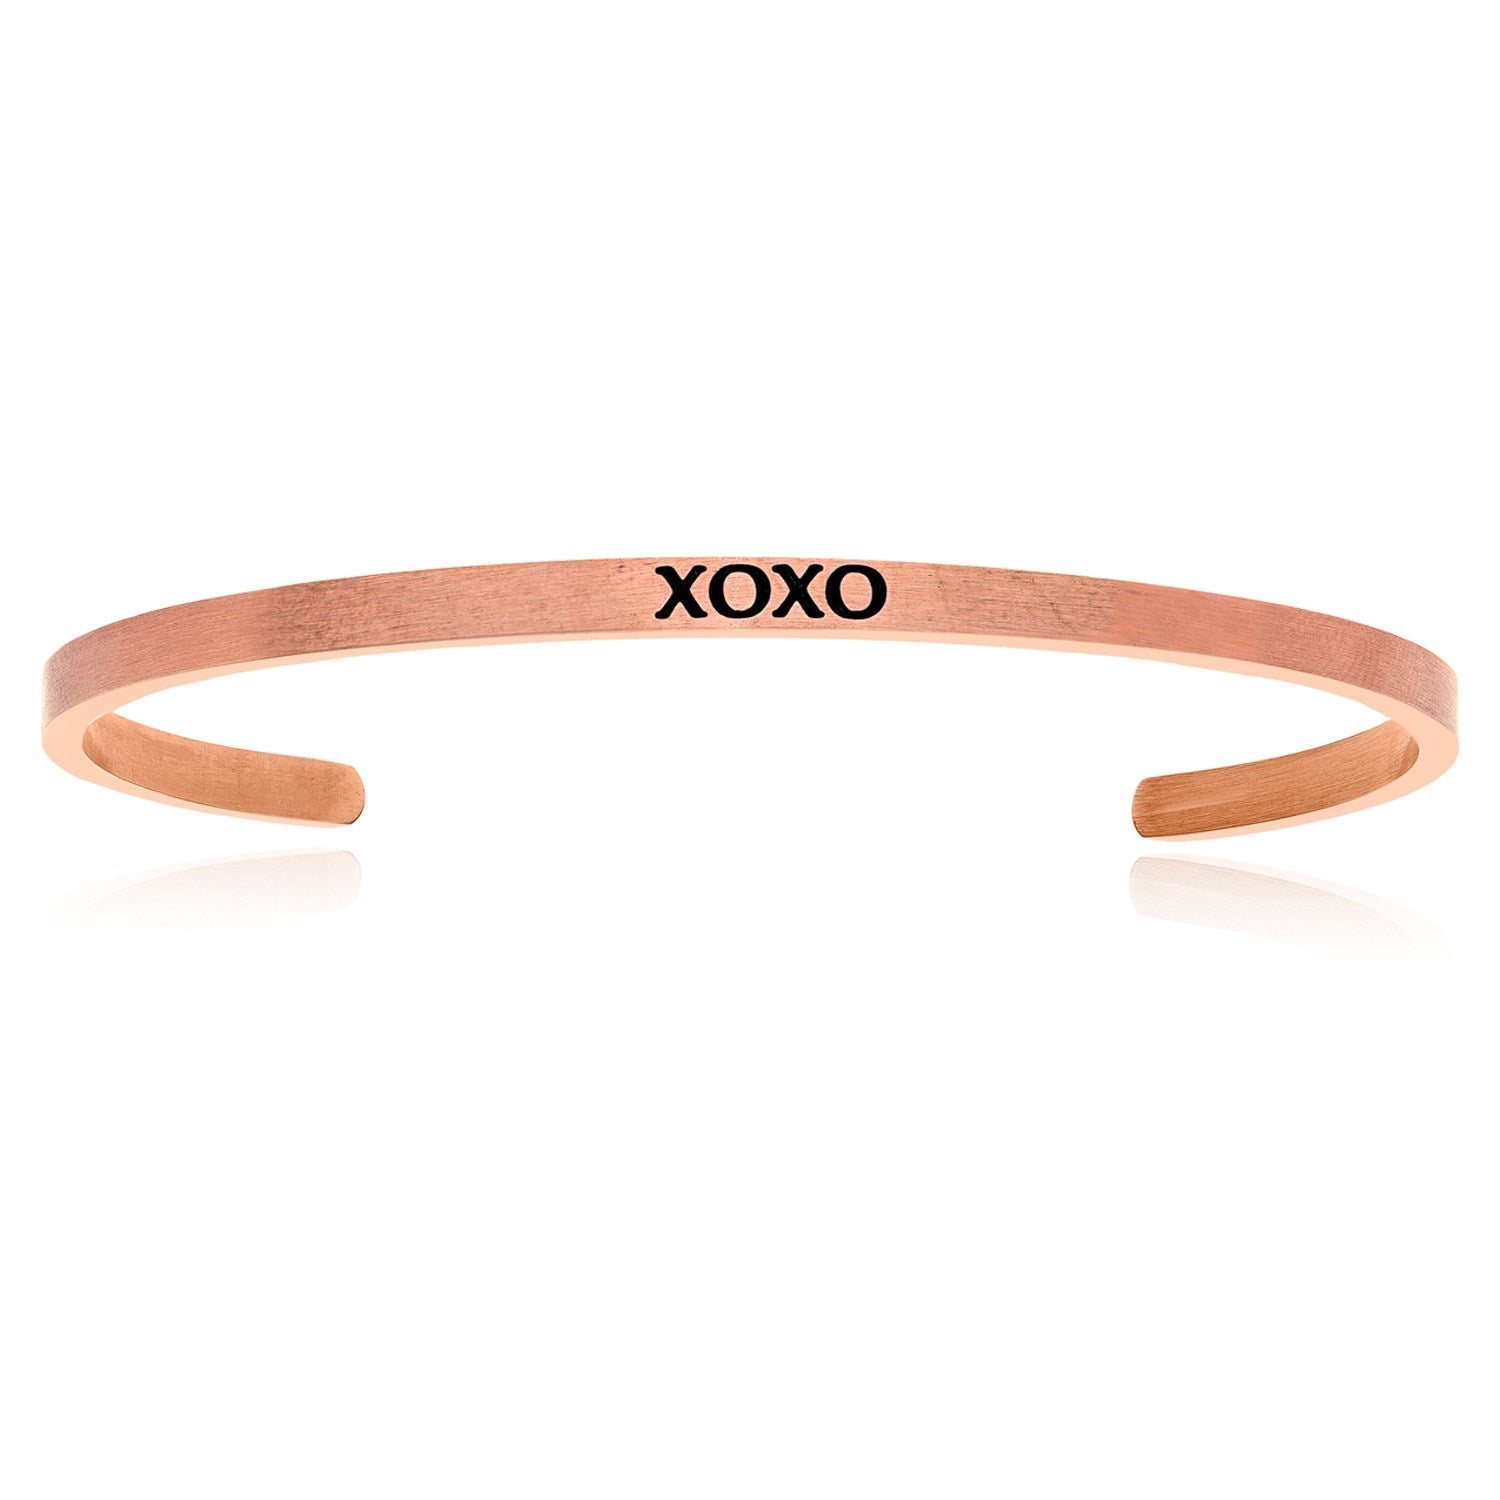 Pink Stainless Steel XOXO Cuff Bracelet